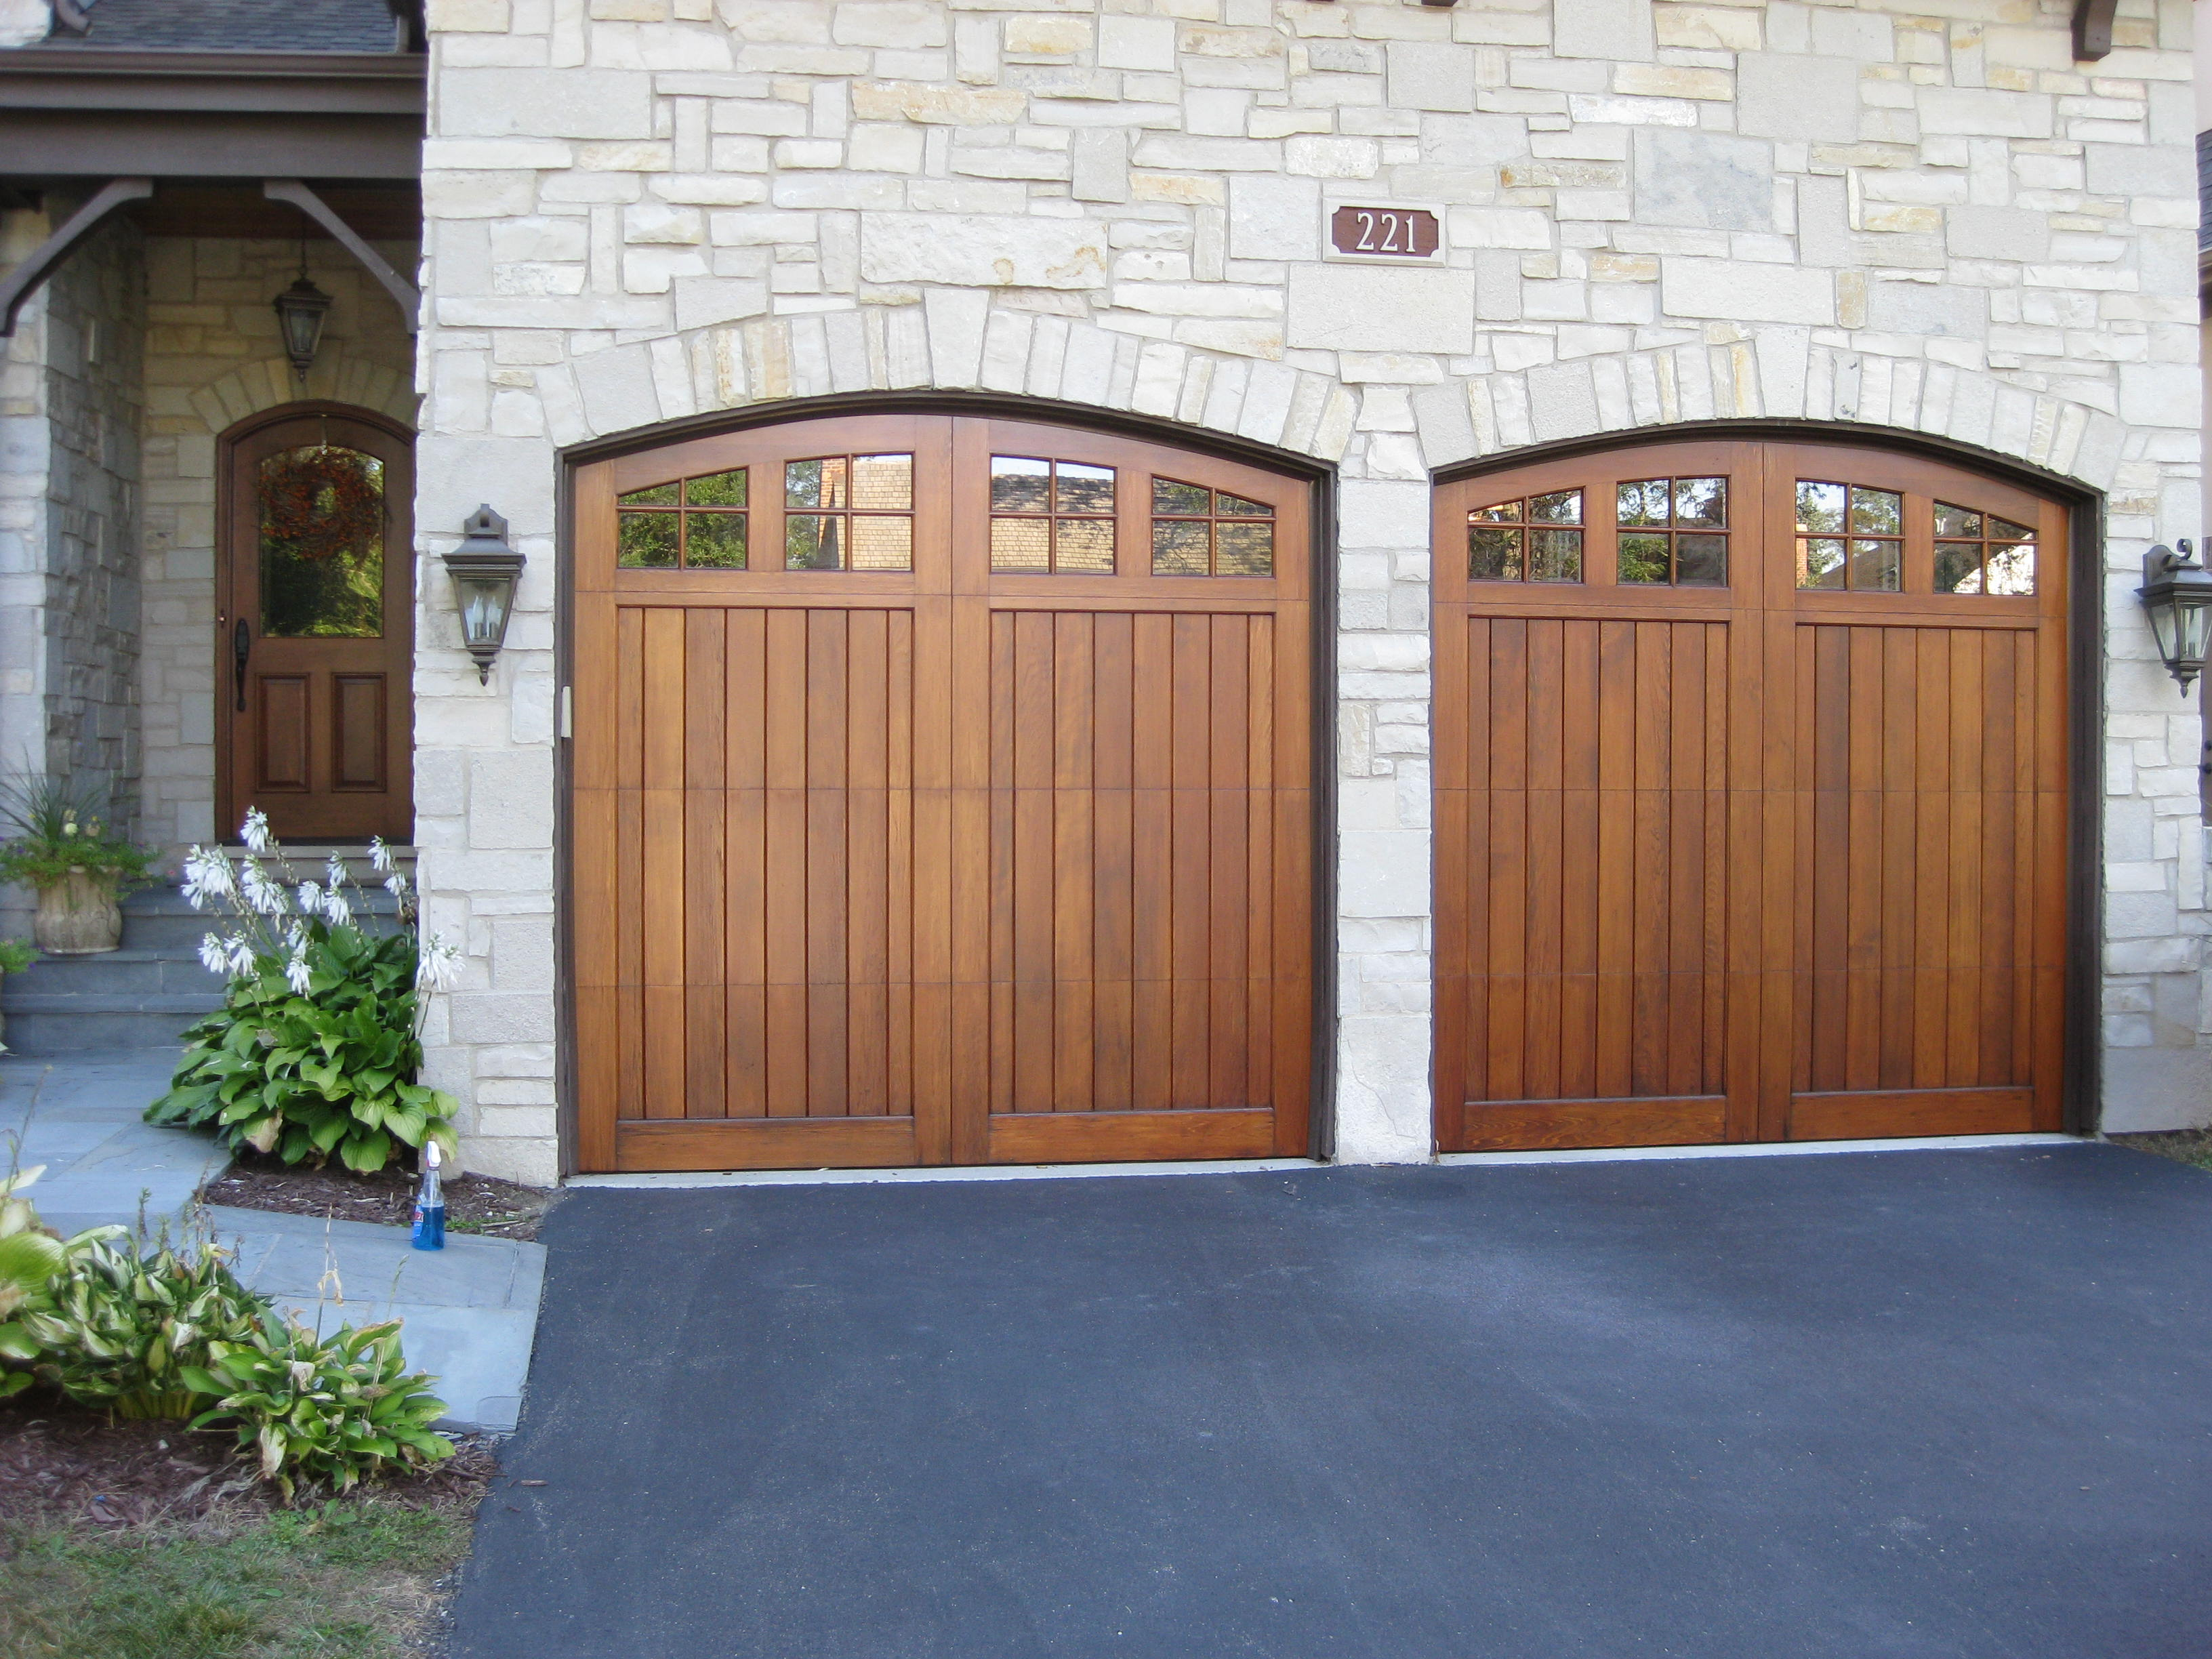 Deciding on refinishing wood garage doors the milky look for Wood looking garage doors